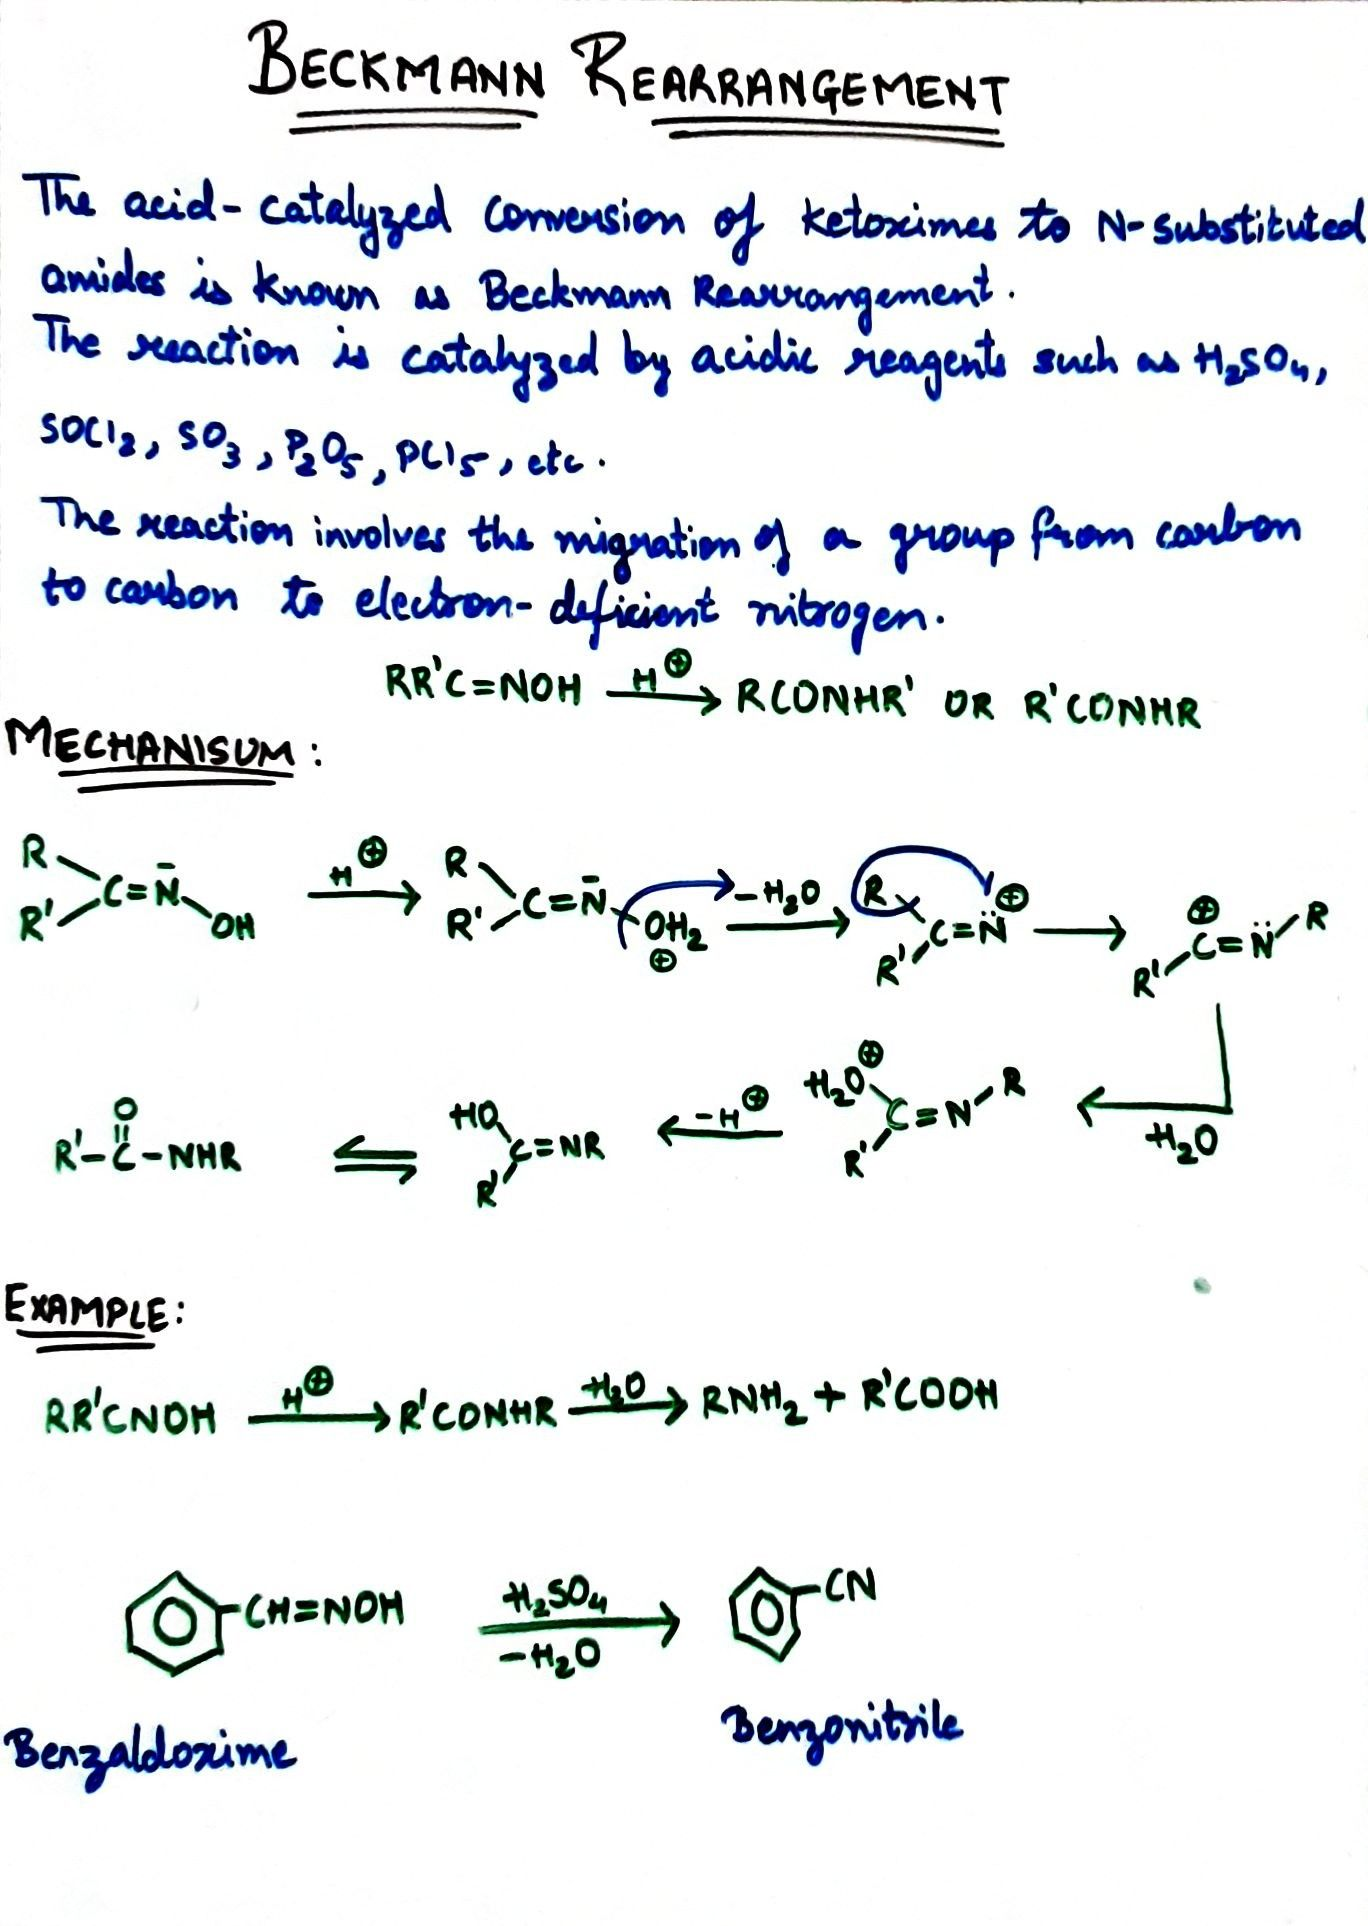 Beckmann Rearrangement Math Math Equations I Know What is addition reaction give example